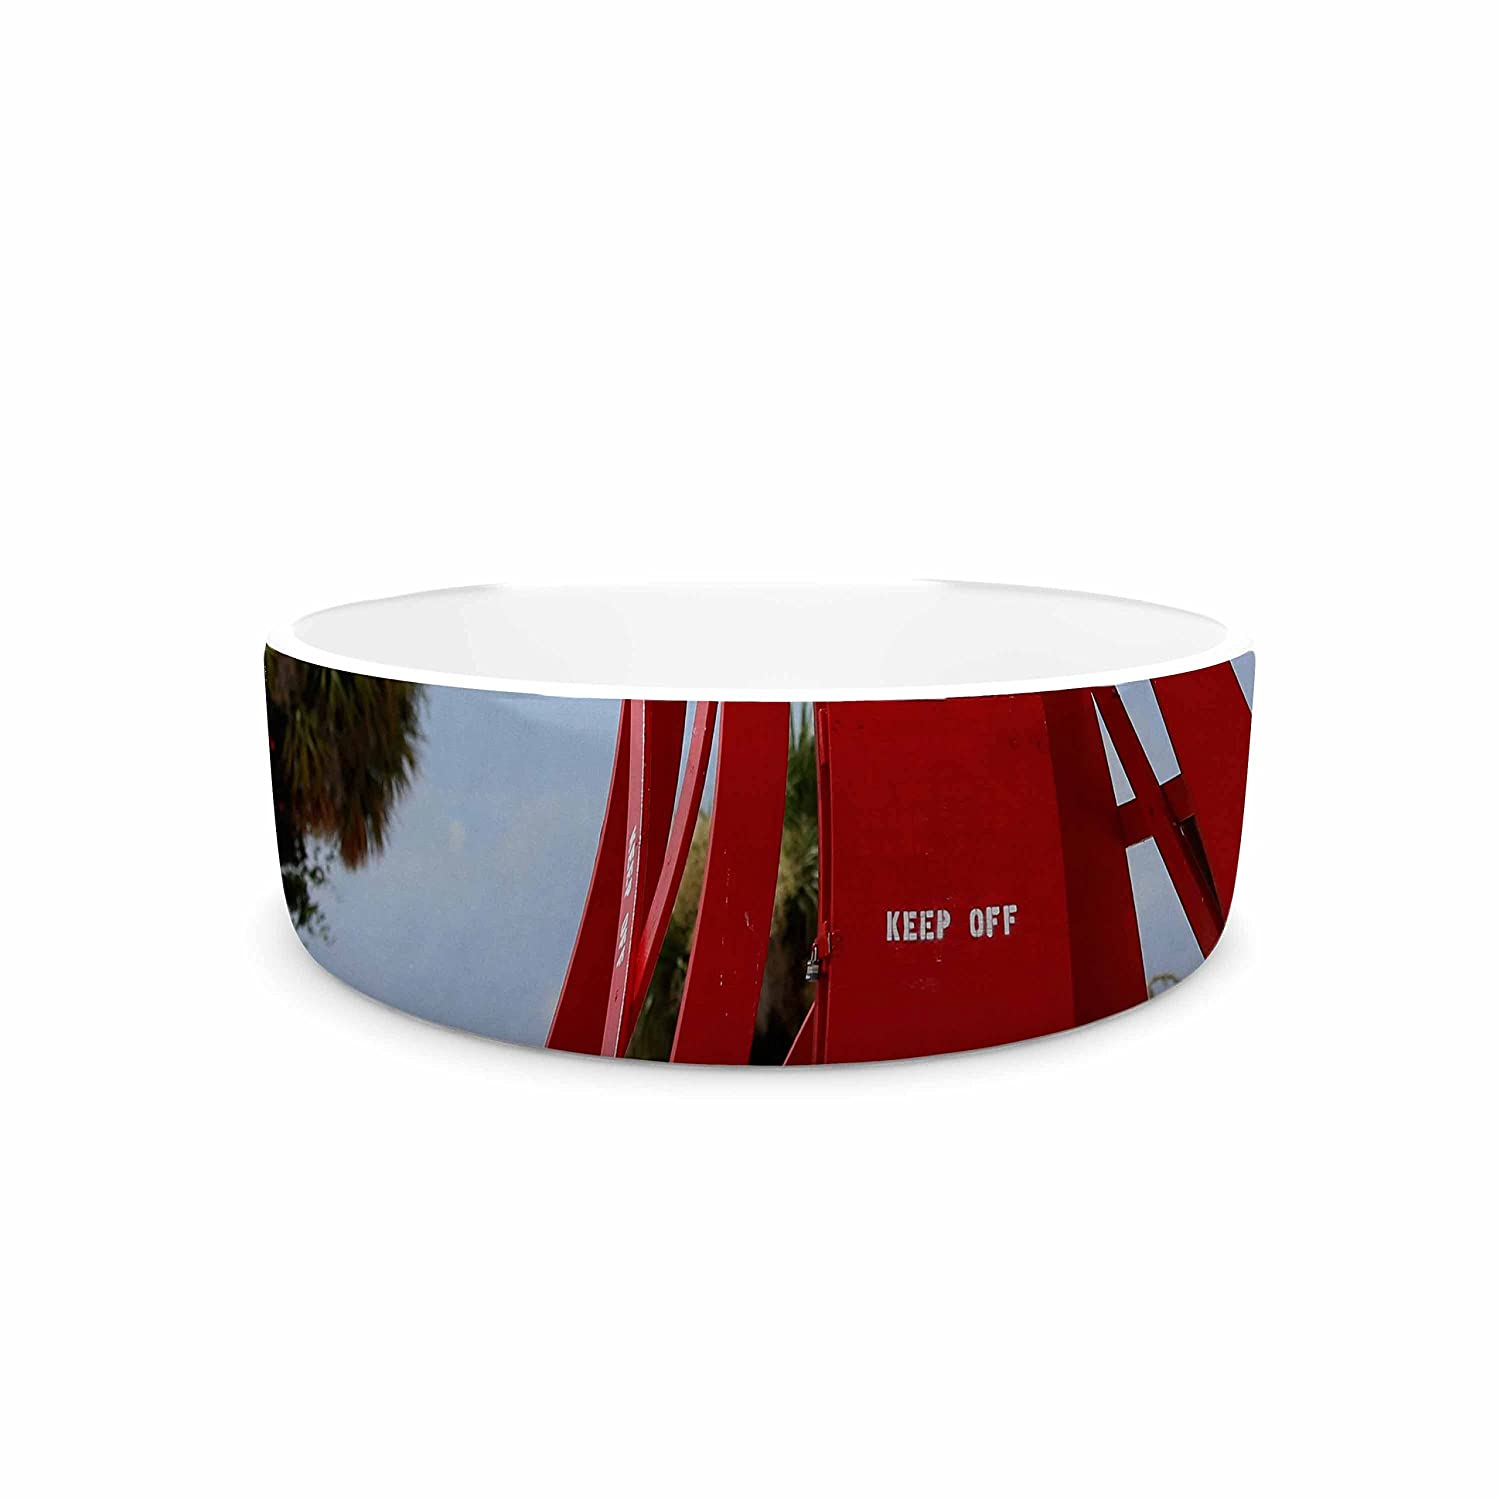 7\ KESS InHouse Angie Turner Keep Off  Red bluee Pet Bowl, 7